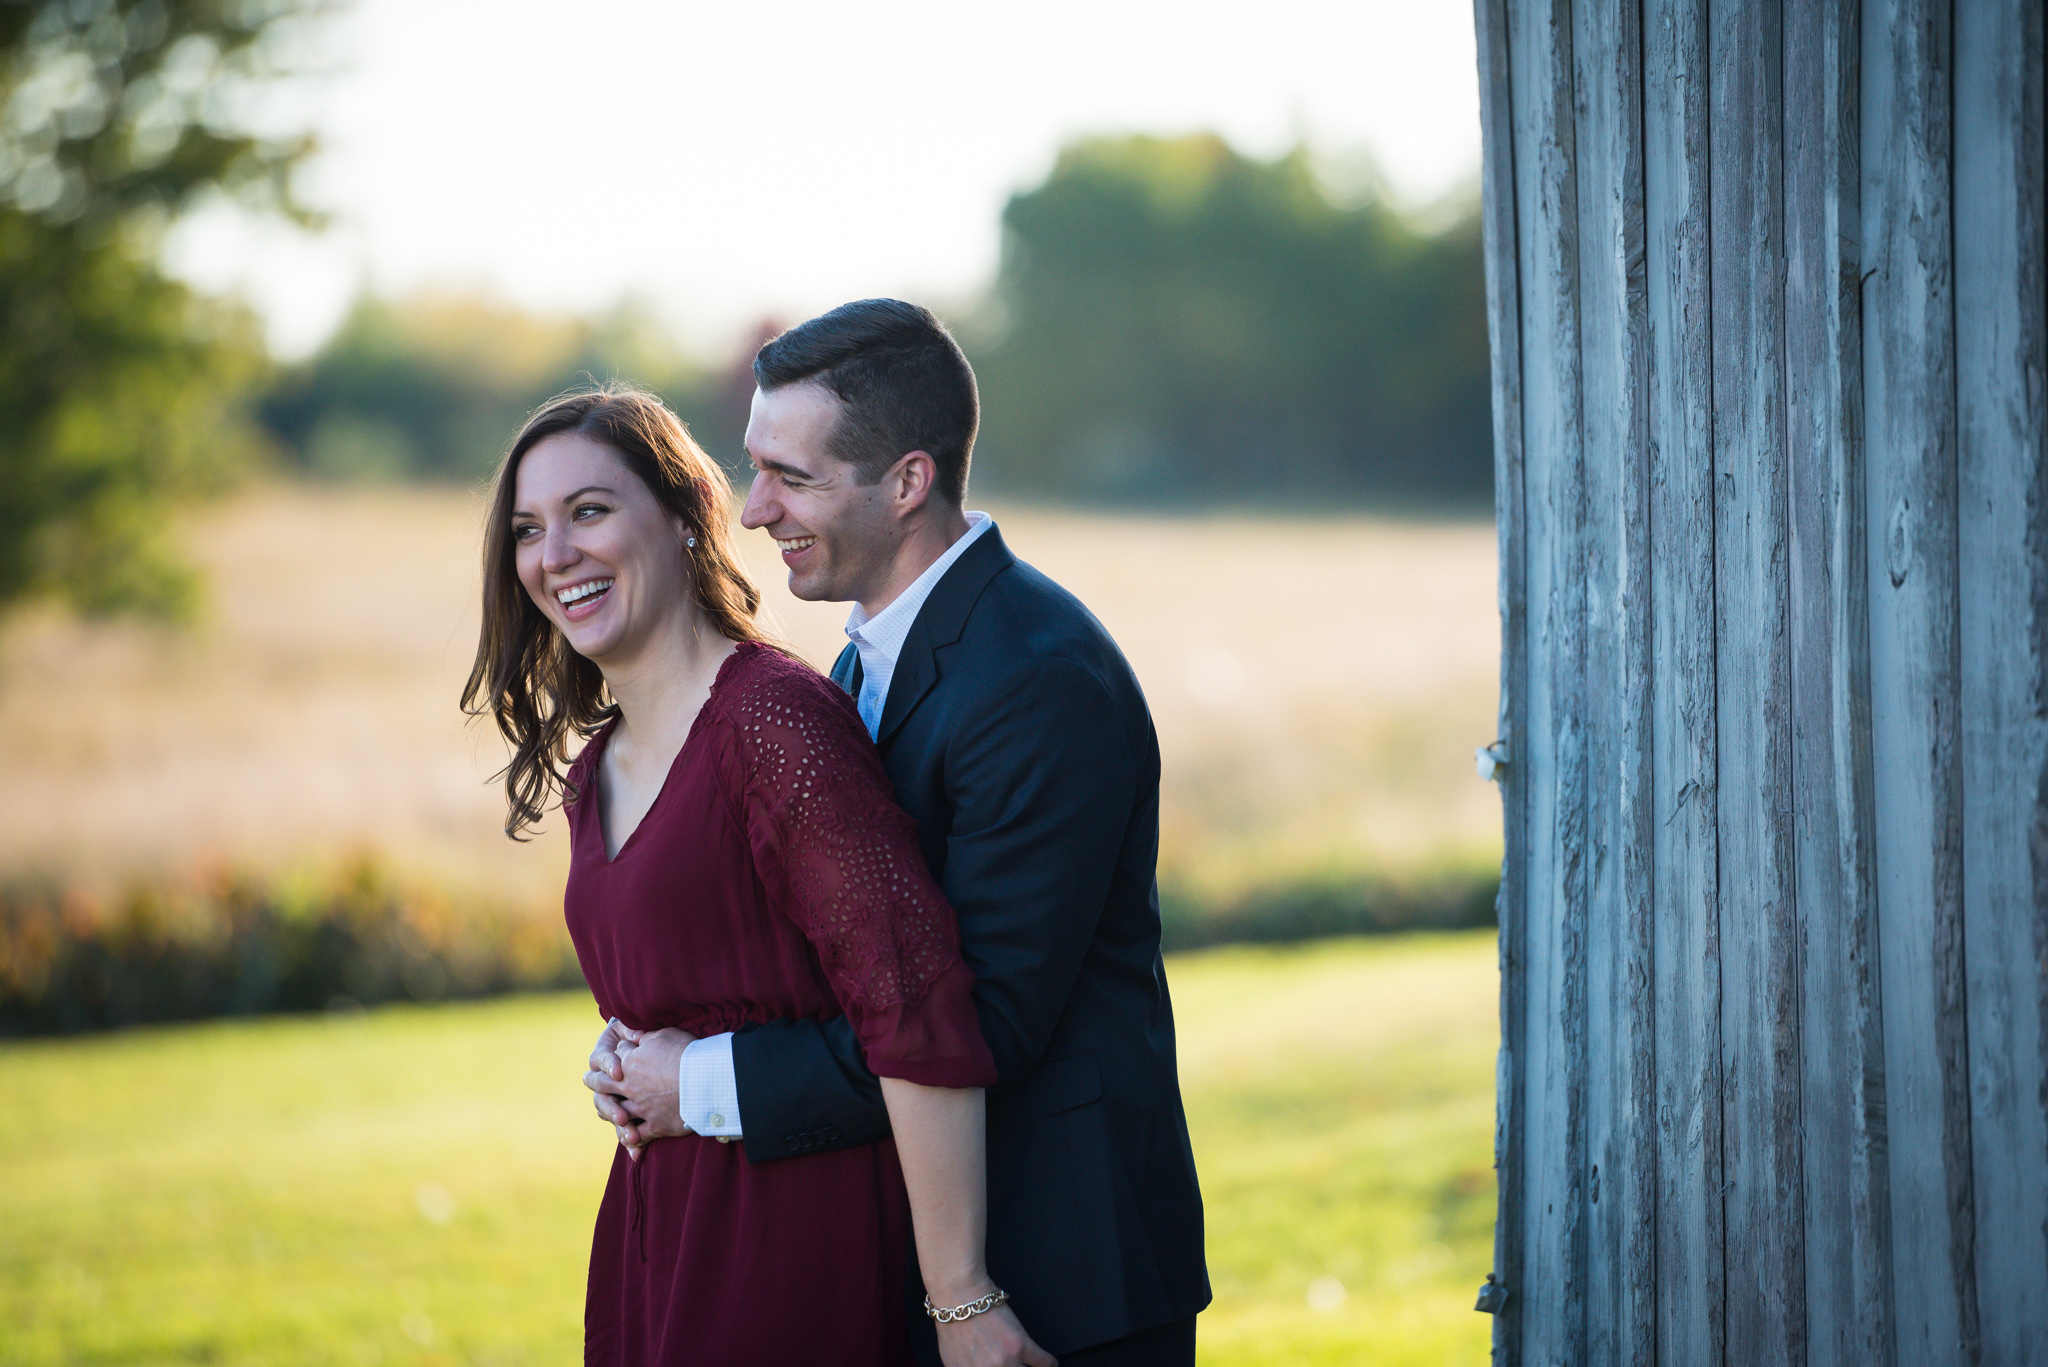 Farm-engagement-shoot-photography-steven-cottrell-lake-barn-9.jpg